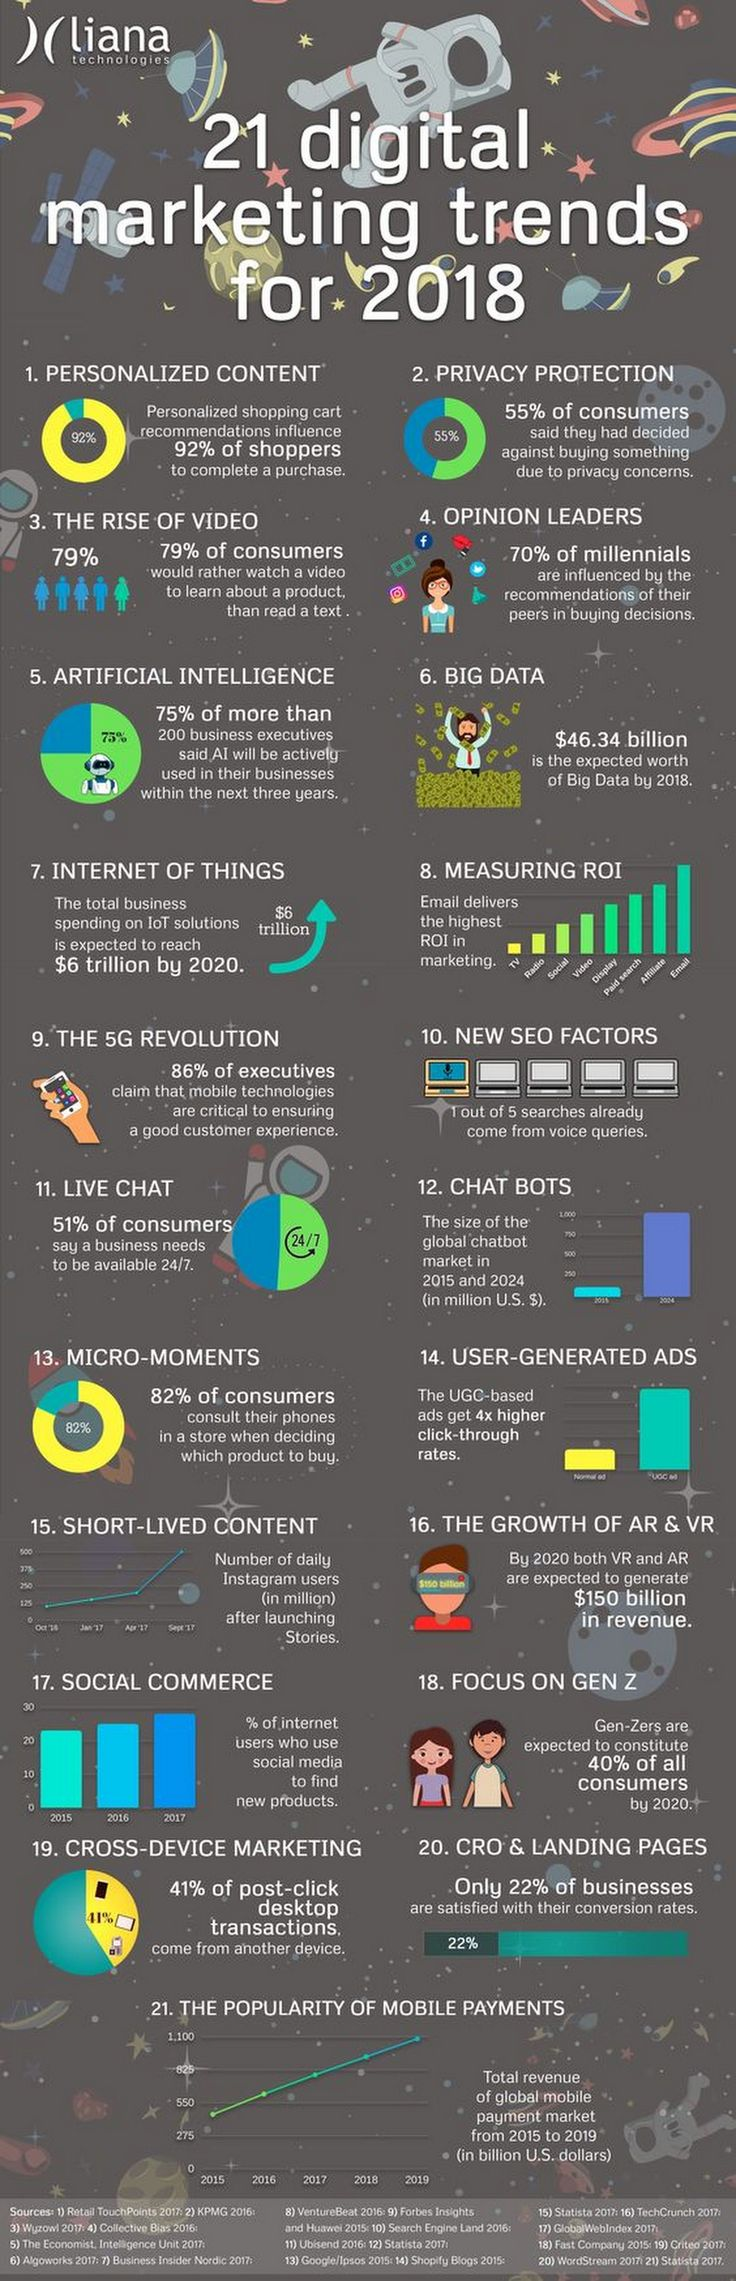 21 Digital Marketing Trends for 2018 - Infographic Download digital contents for your online marketing campaign. Only on Shutterstock - https://shutr.b... - infographicsdesignspro - Google+ #digitalmarketing2018 #digitalmarketingcampaign #digitalmarketingstrategy